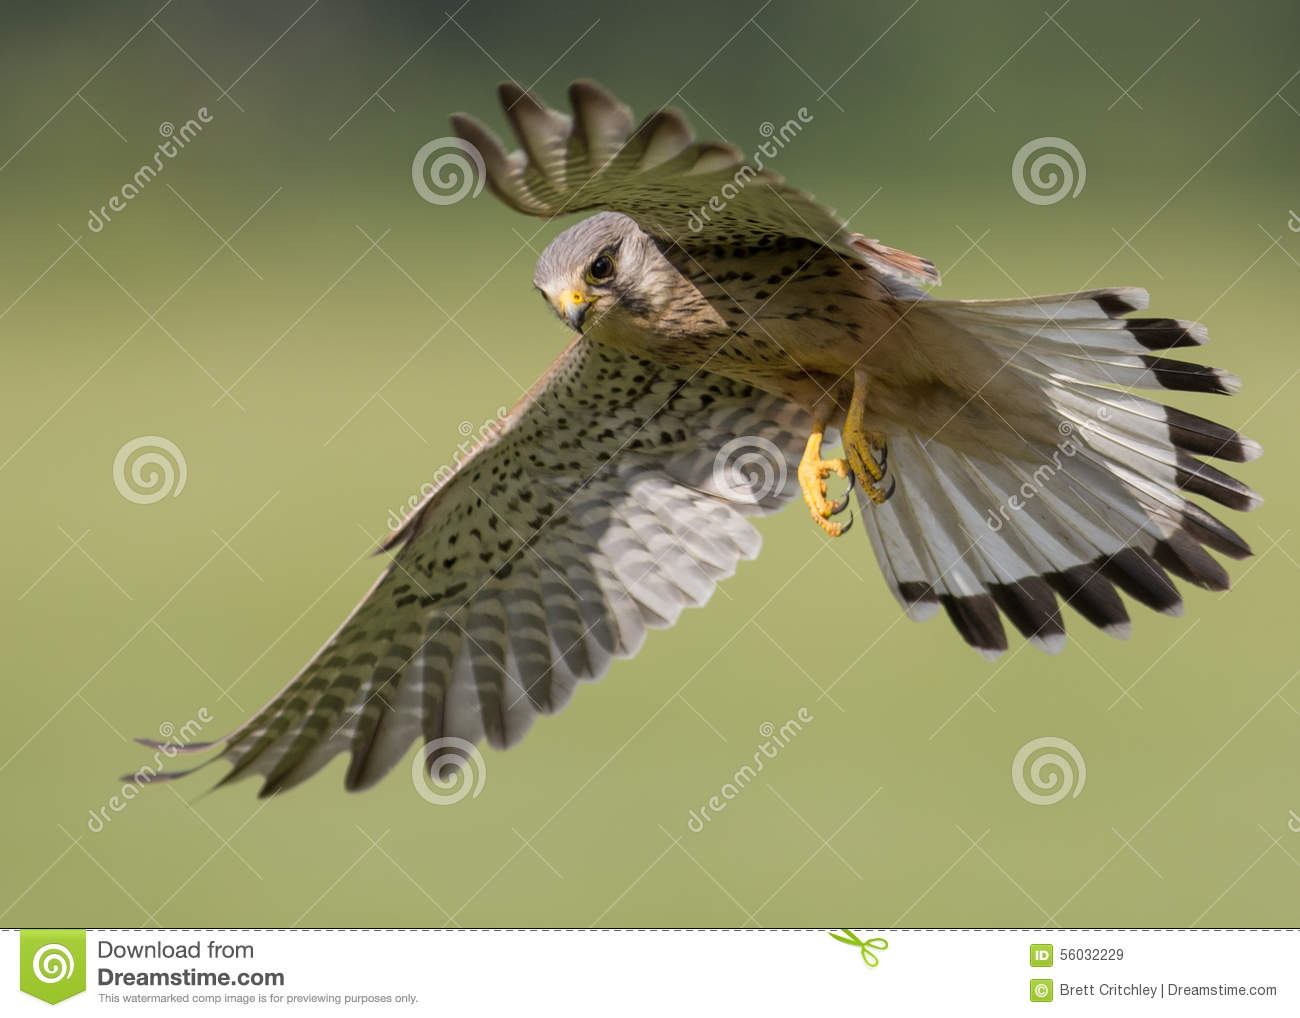 Bird of prey in flight